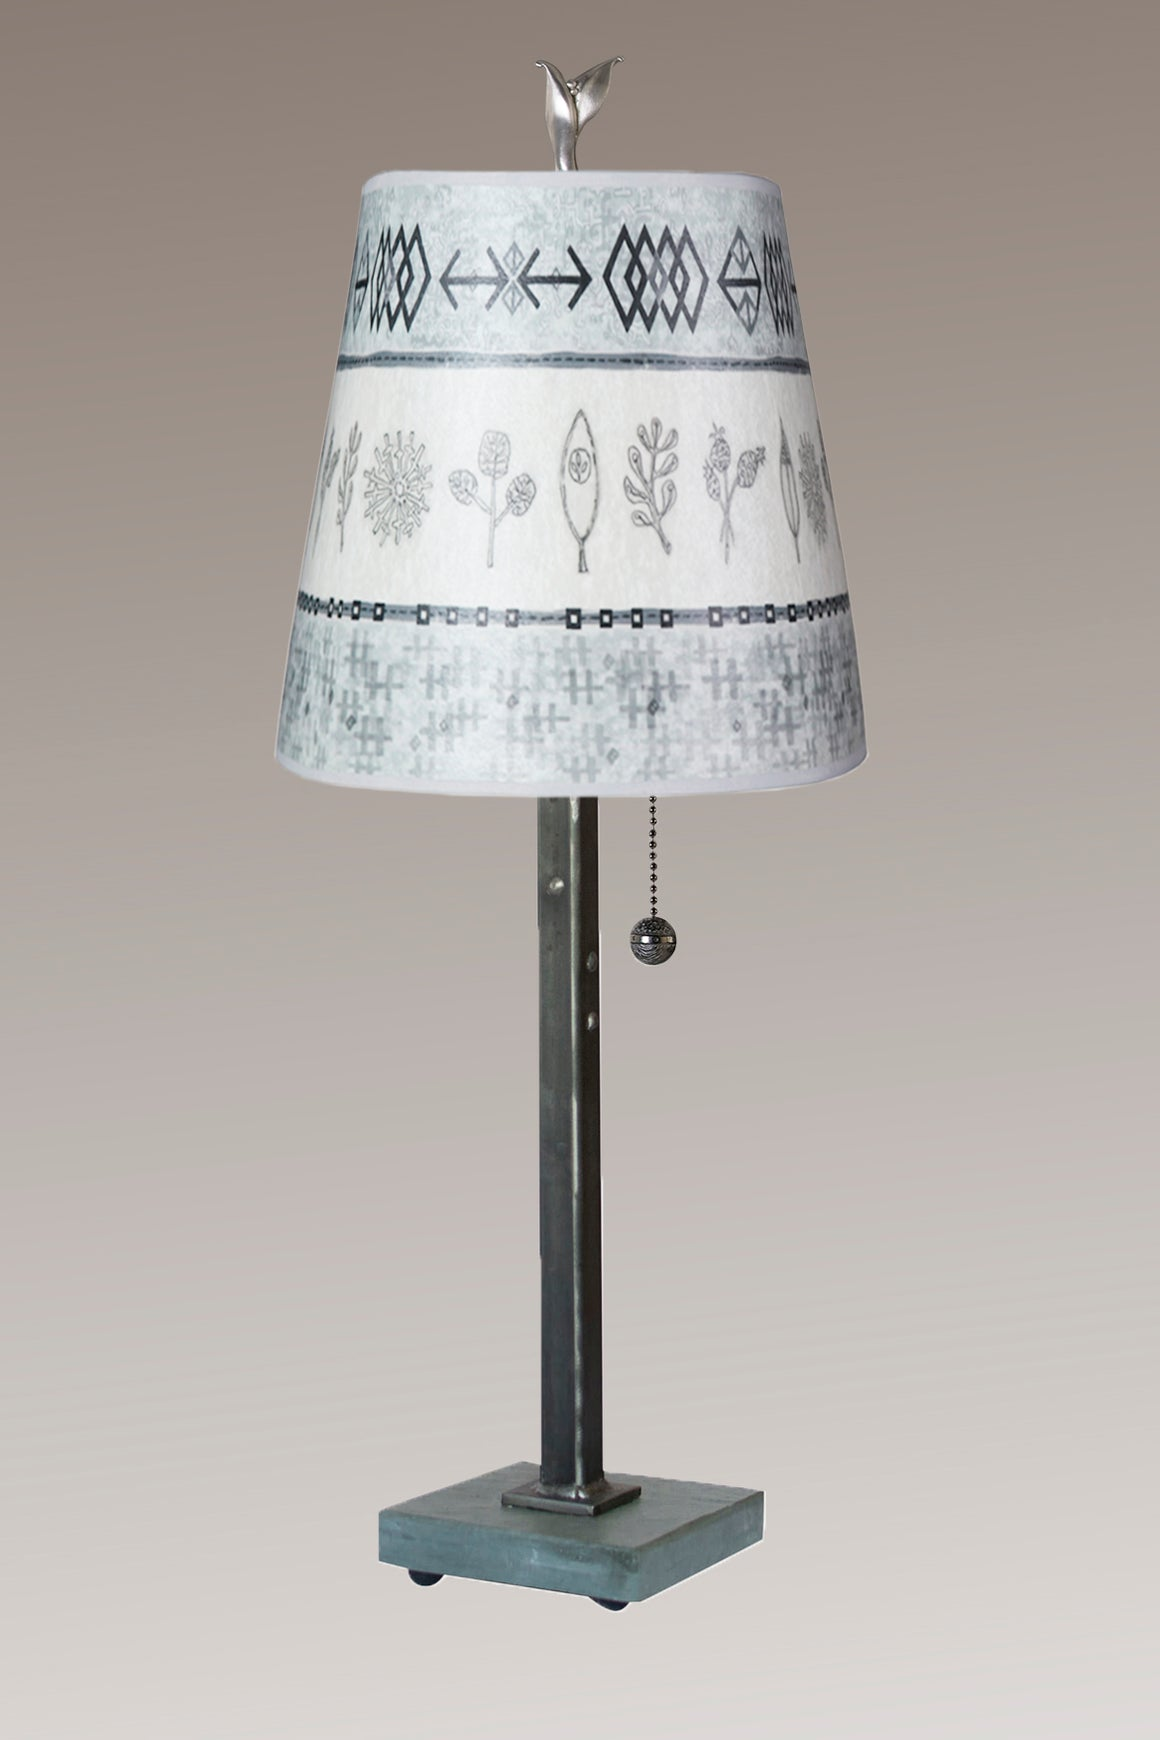 Steel Table Lamp on Vermont Slate Base with Small Drum Shade in Woven & Sprig in Mist